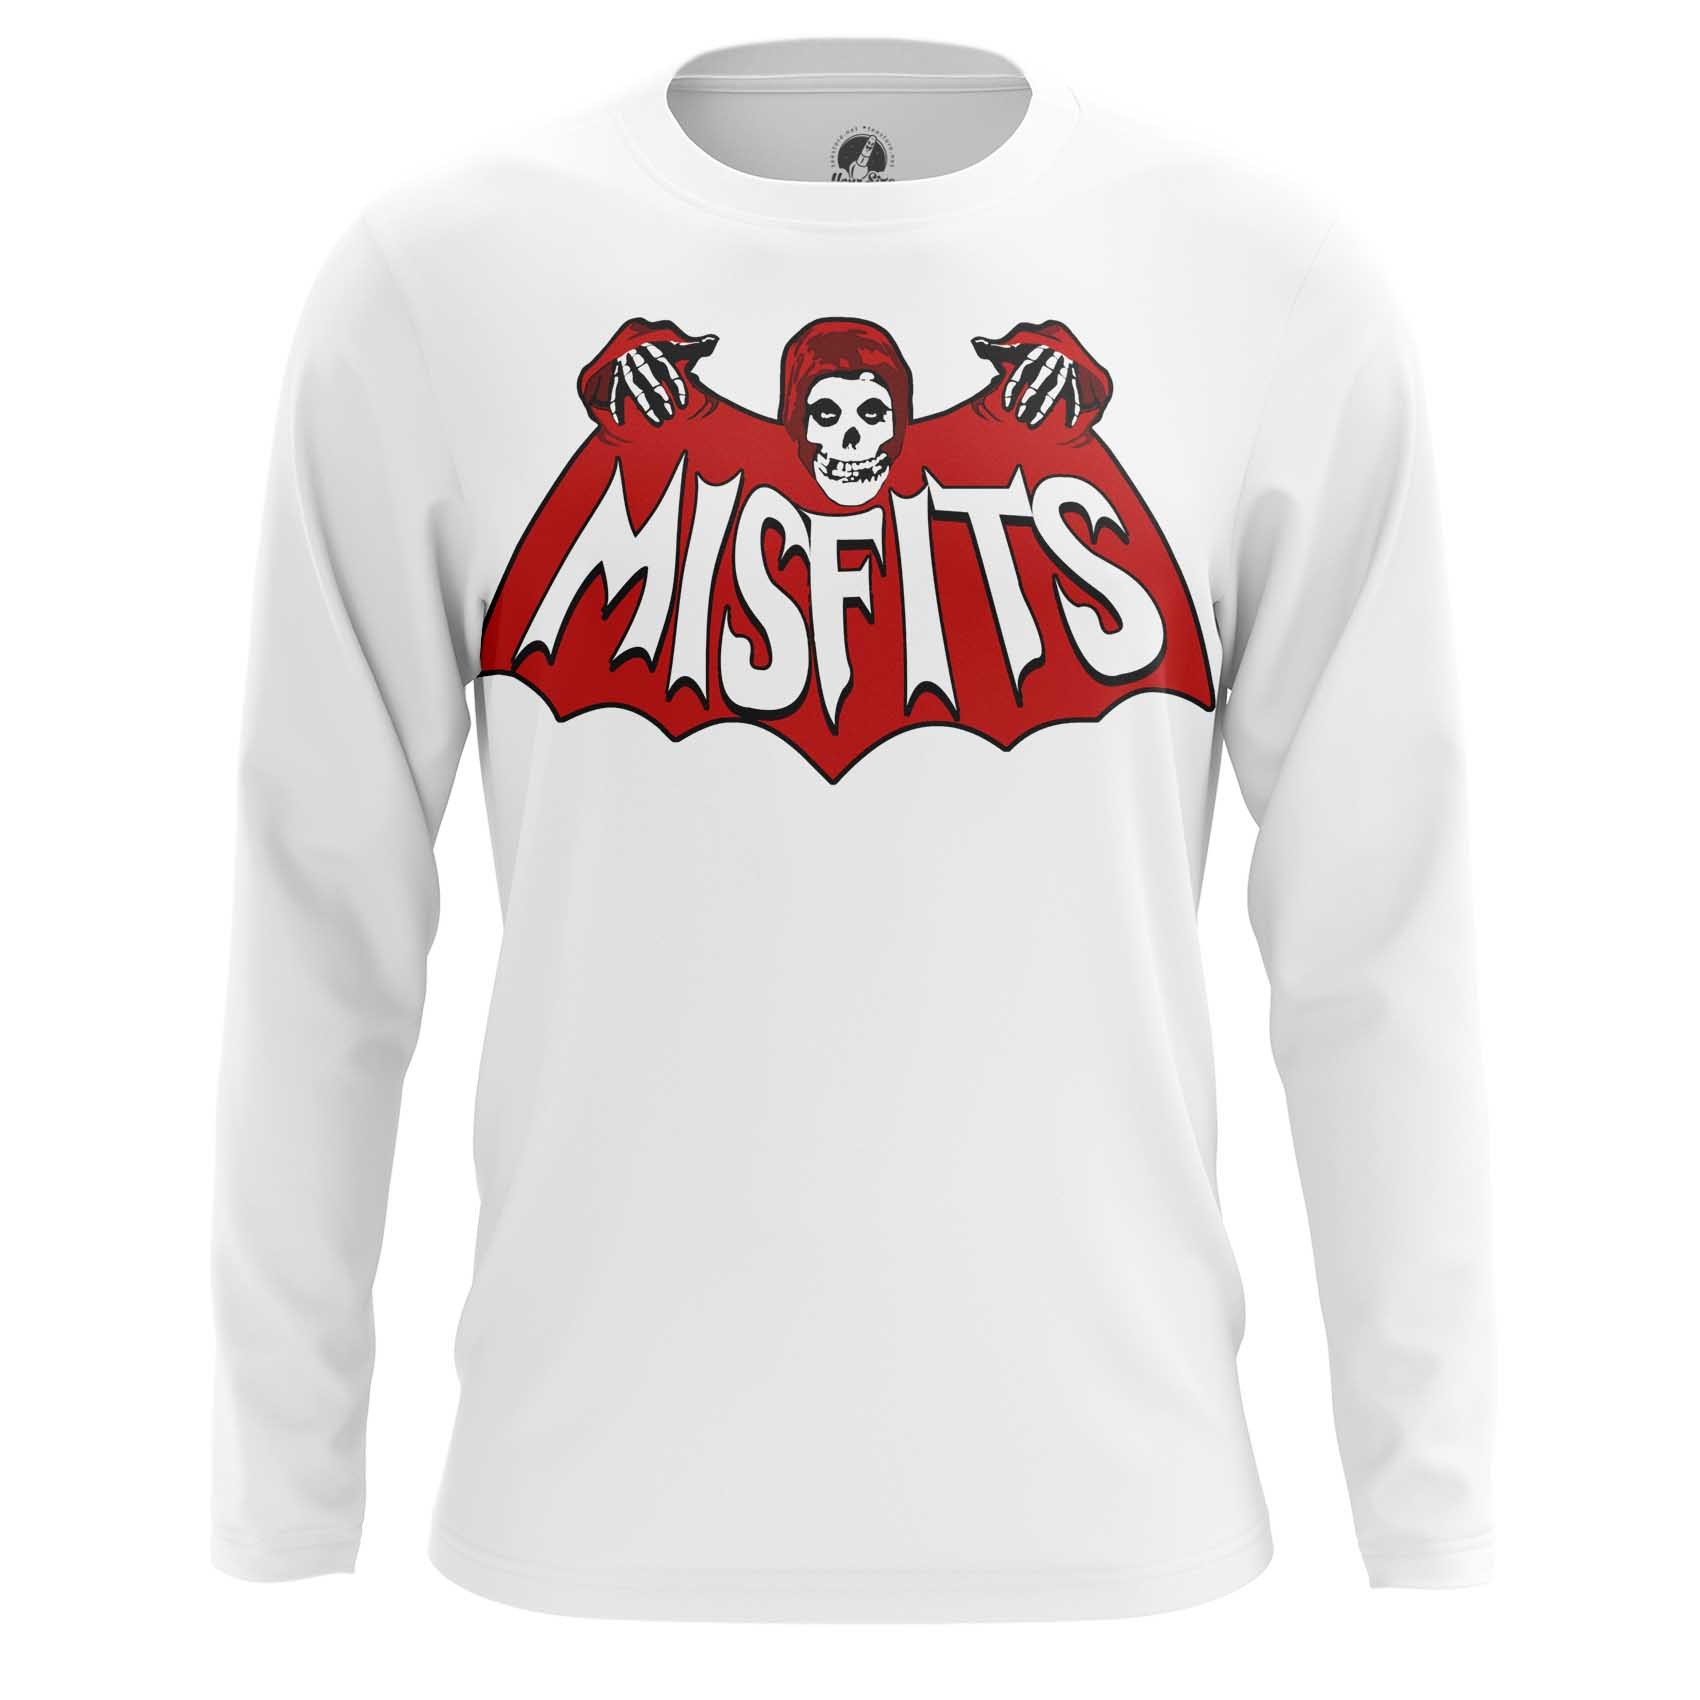 Collectibles Men'S T-Shirt Misfits Based On Music Band